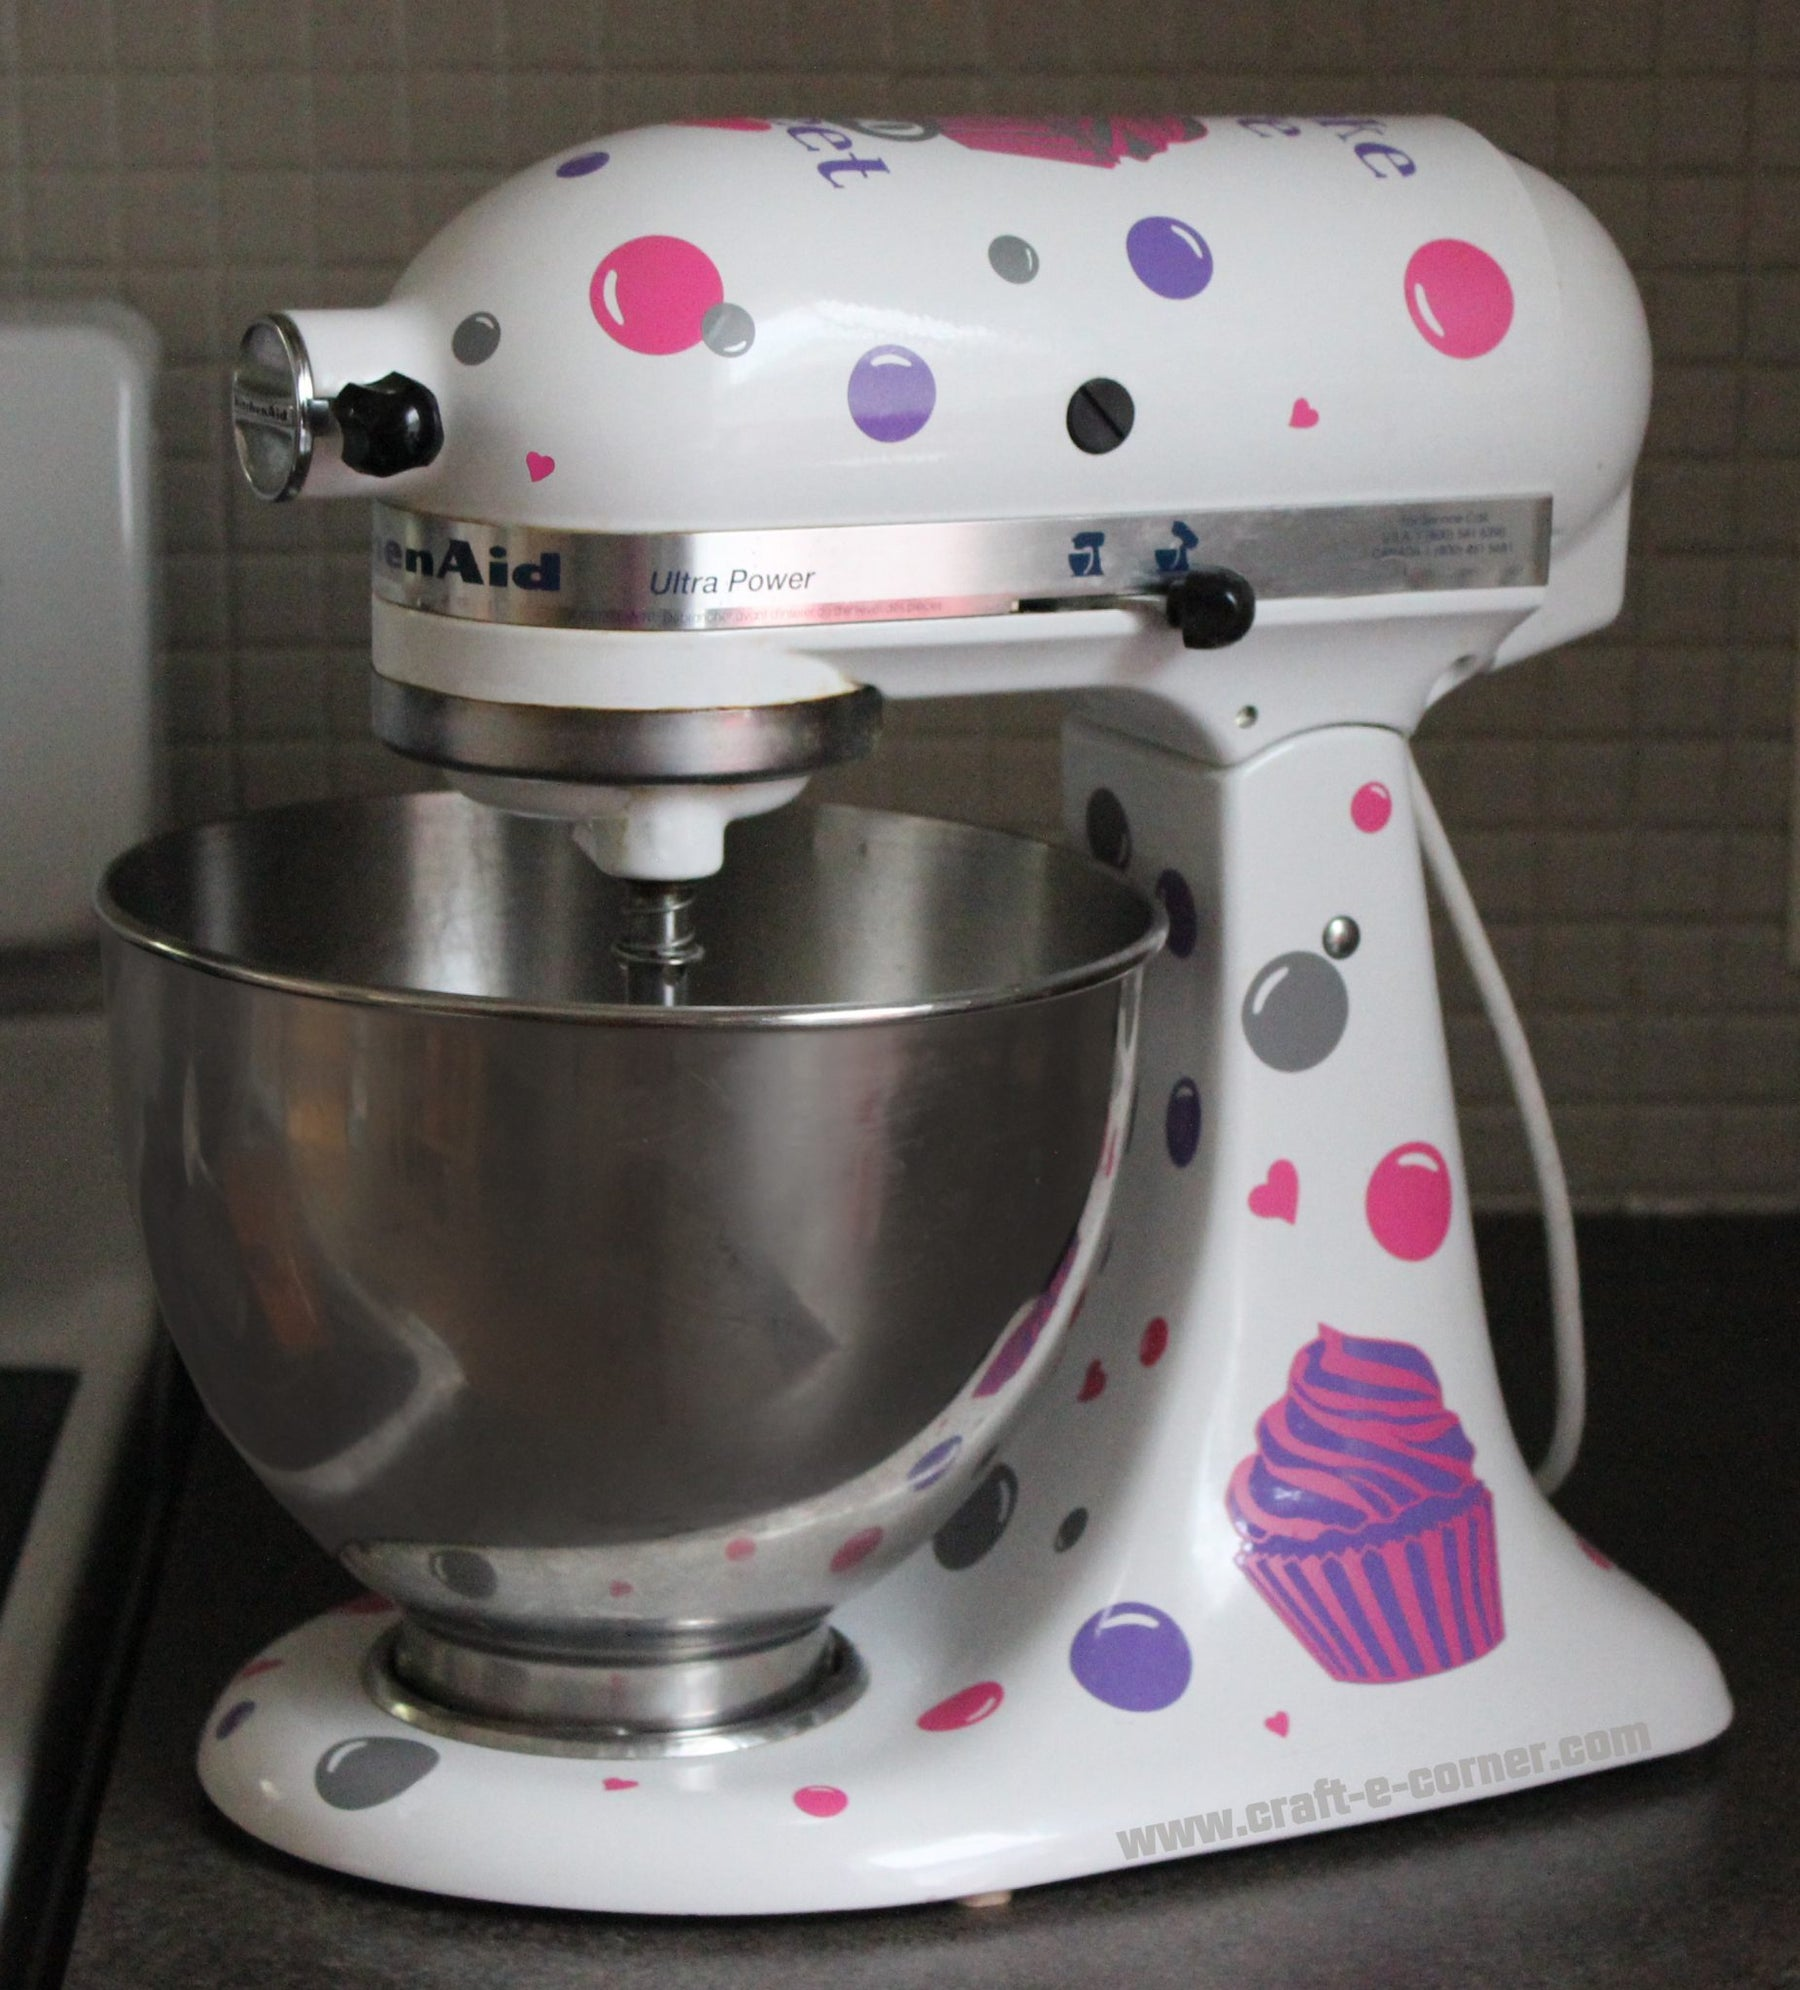 Design #4: Cupcakes!  Personalizing Your Stand Mixer